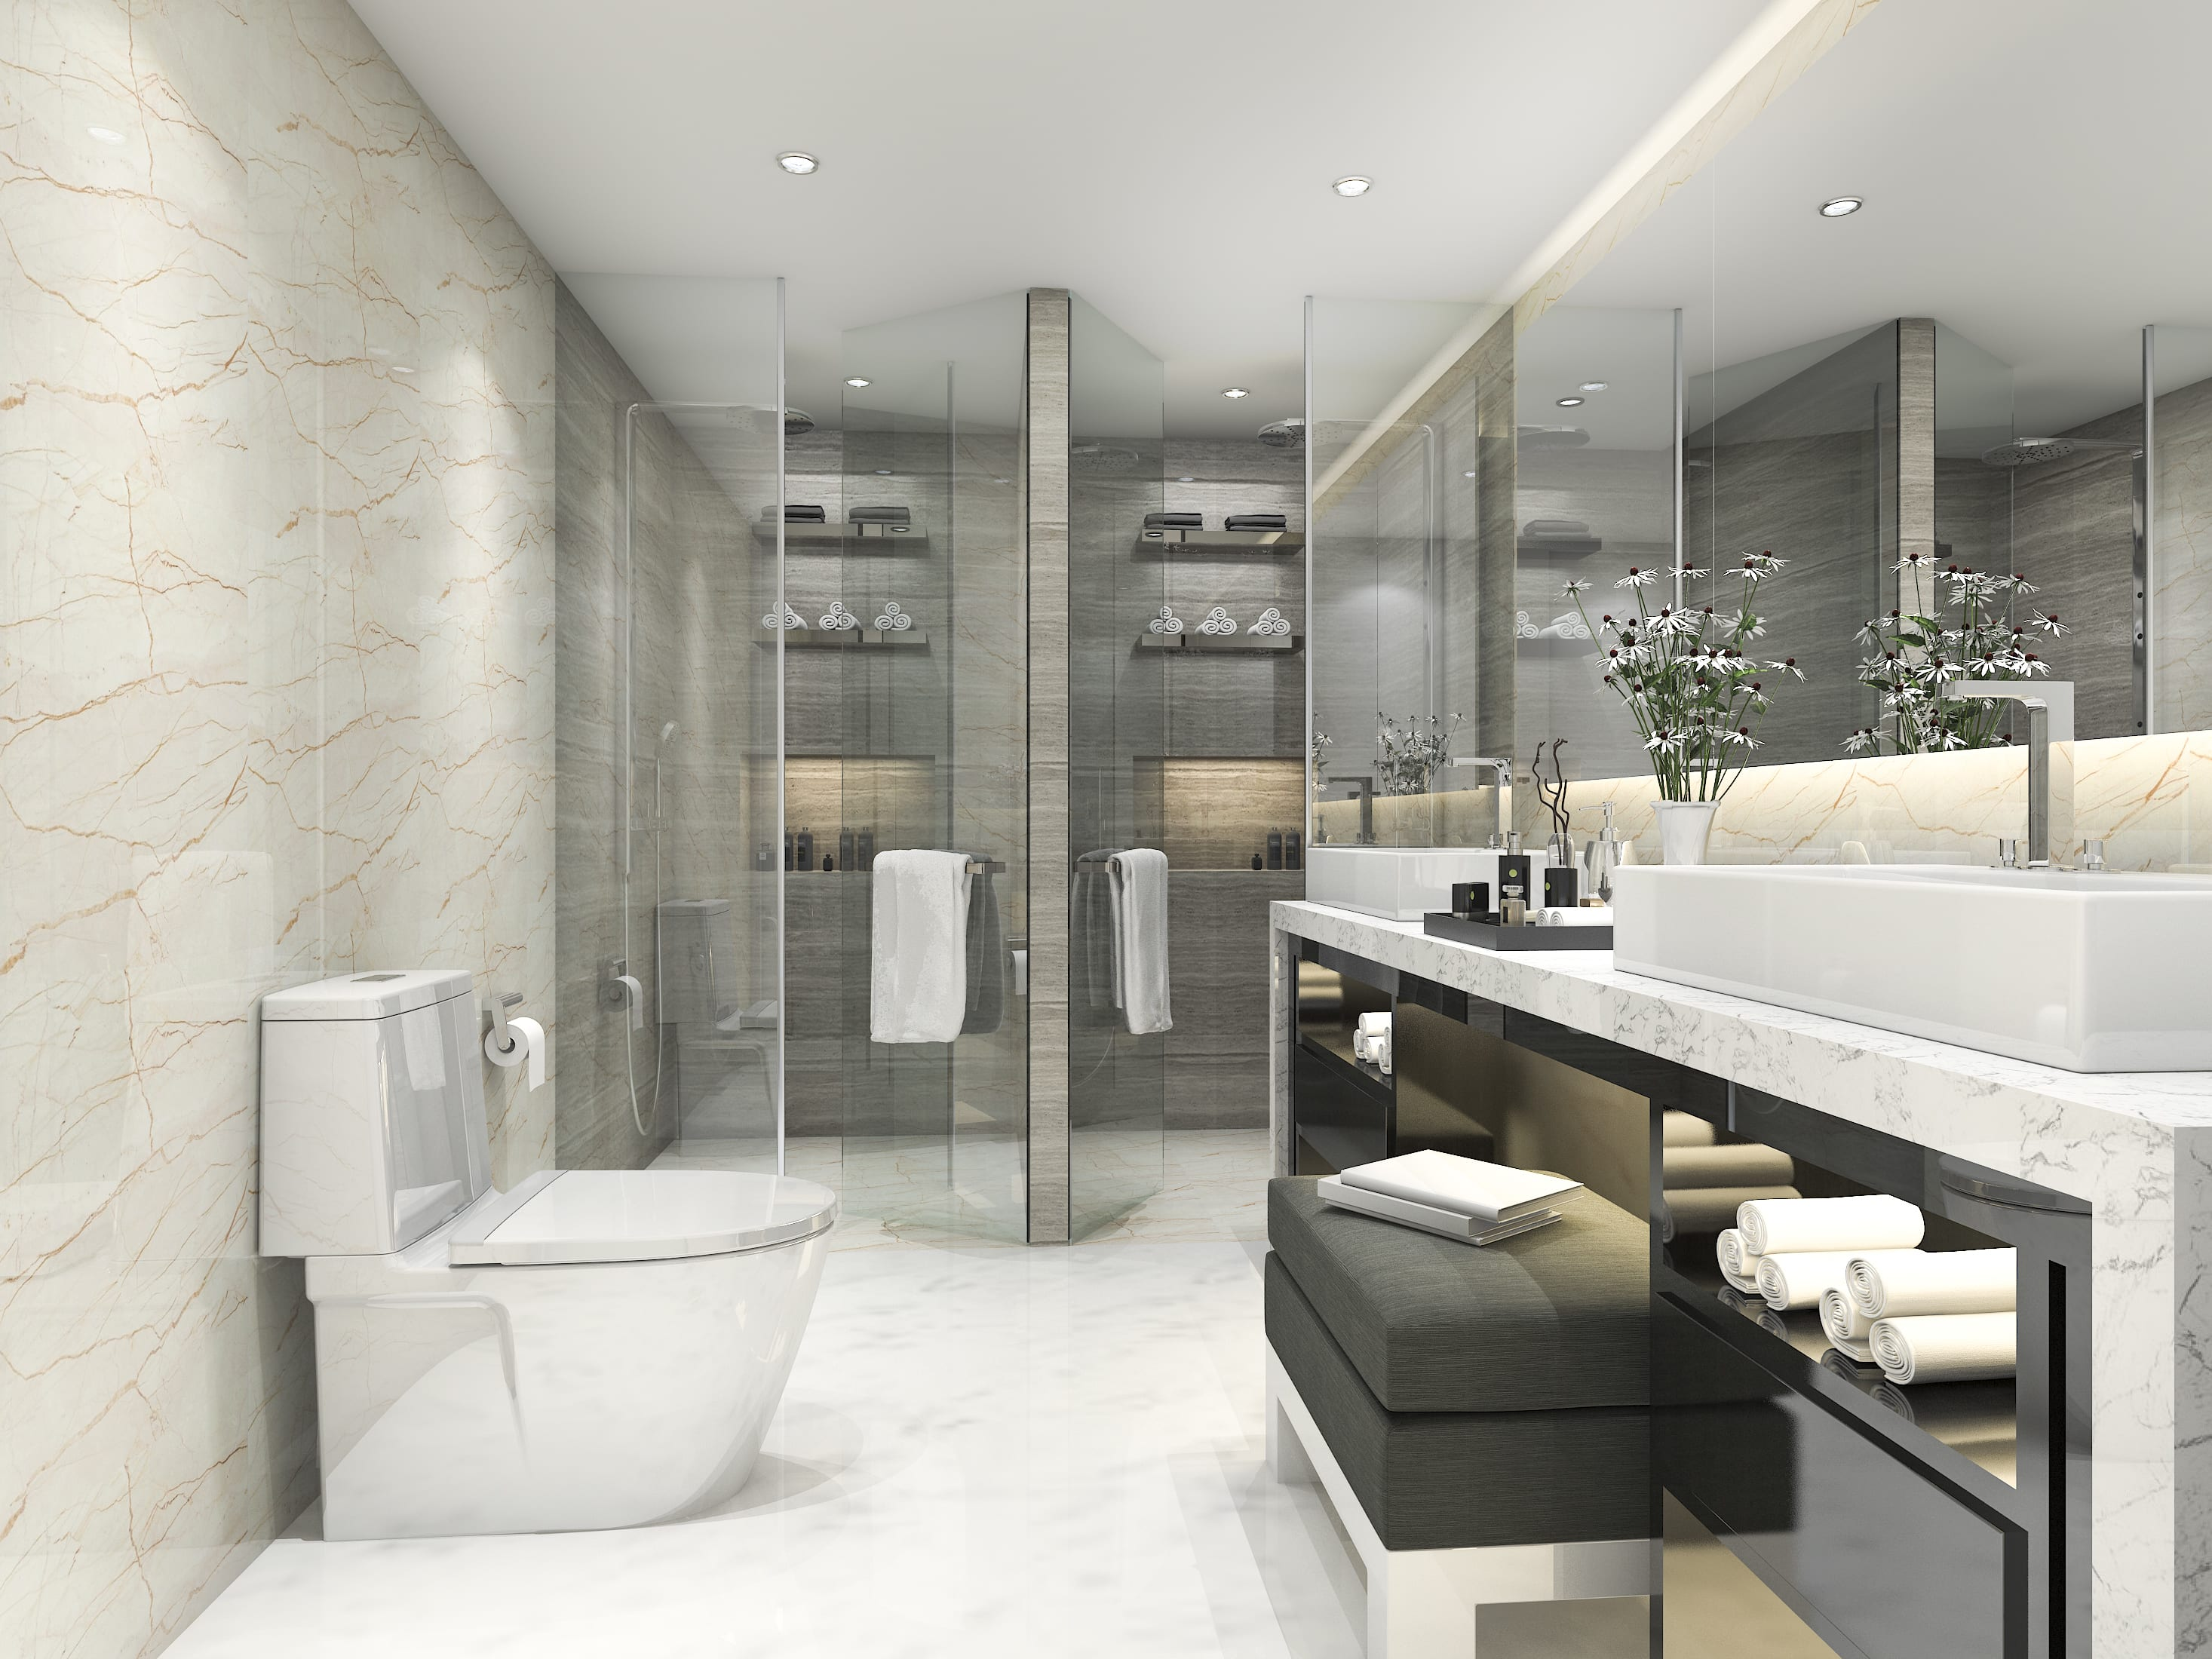 Design 3d Model And Render Your Bathroom Project By Architectgroup